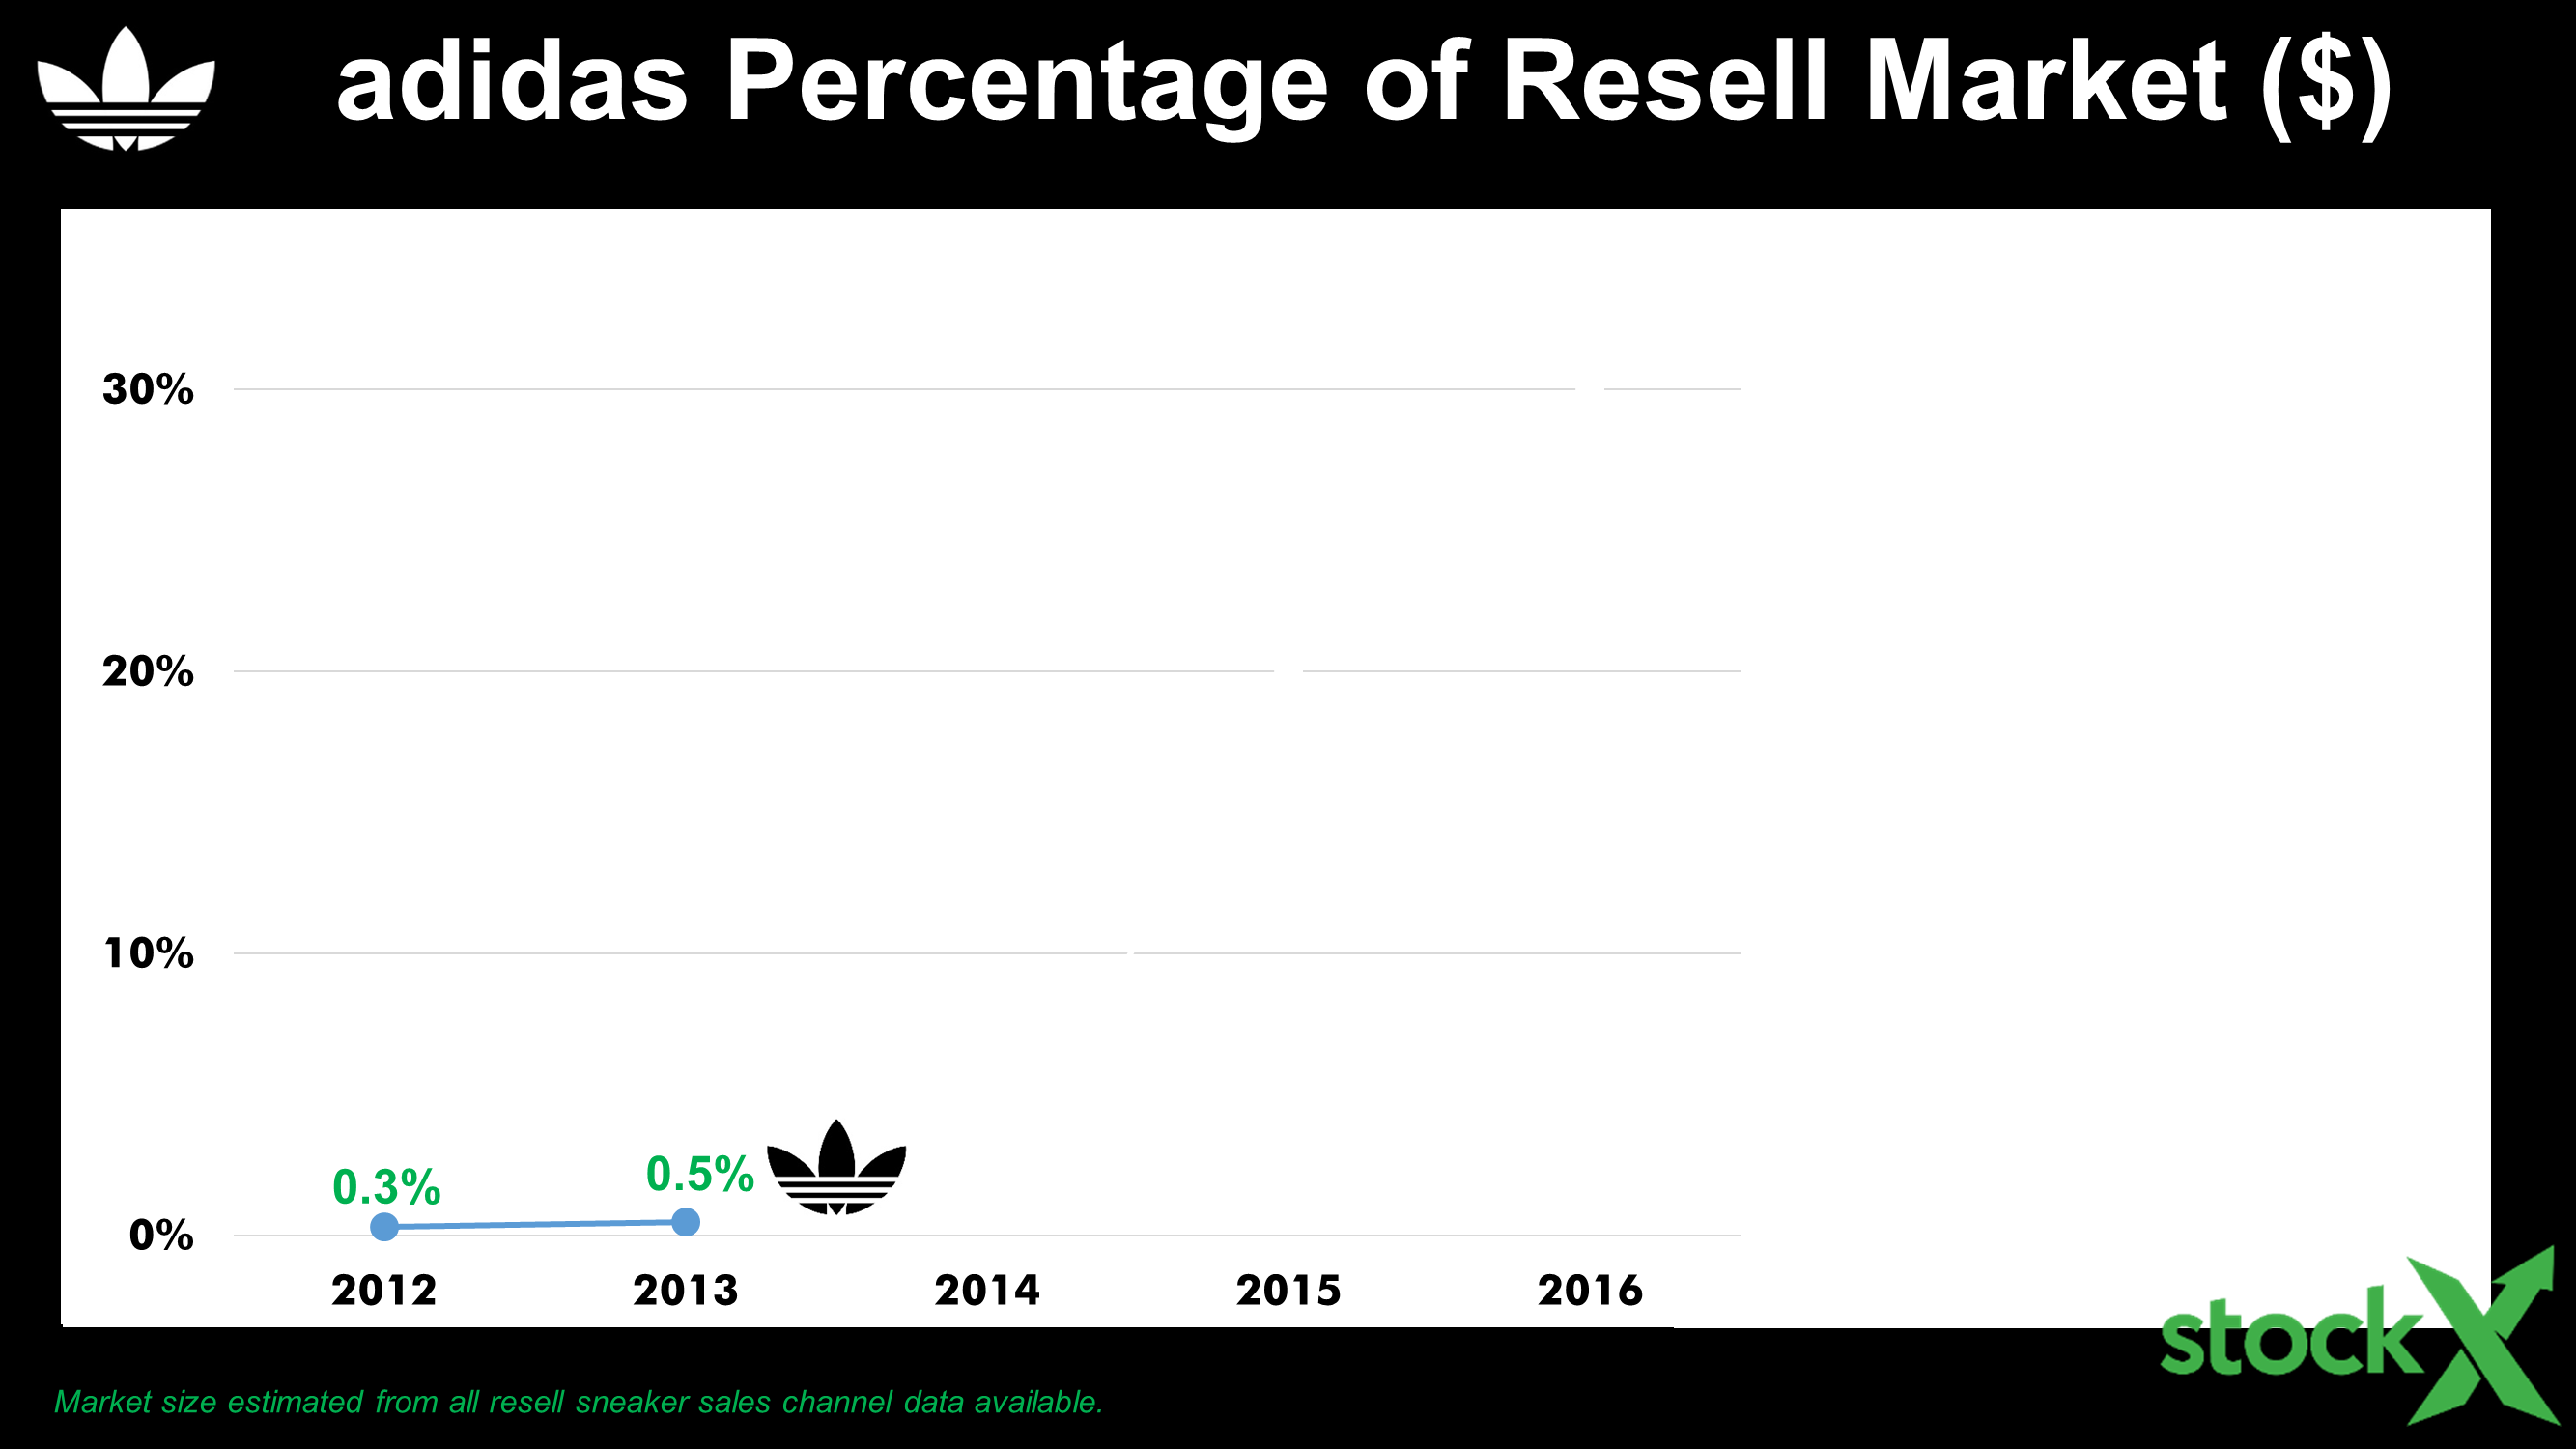 adidas percentage of resell market 2012-2013 line graph